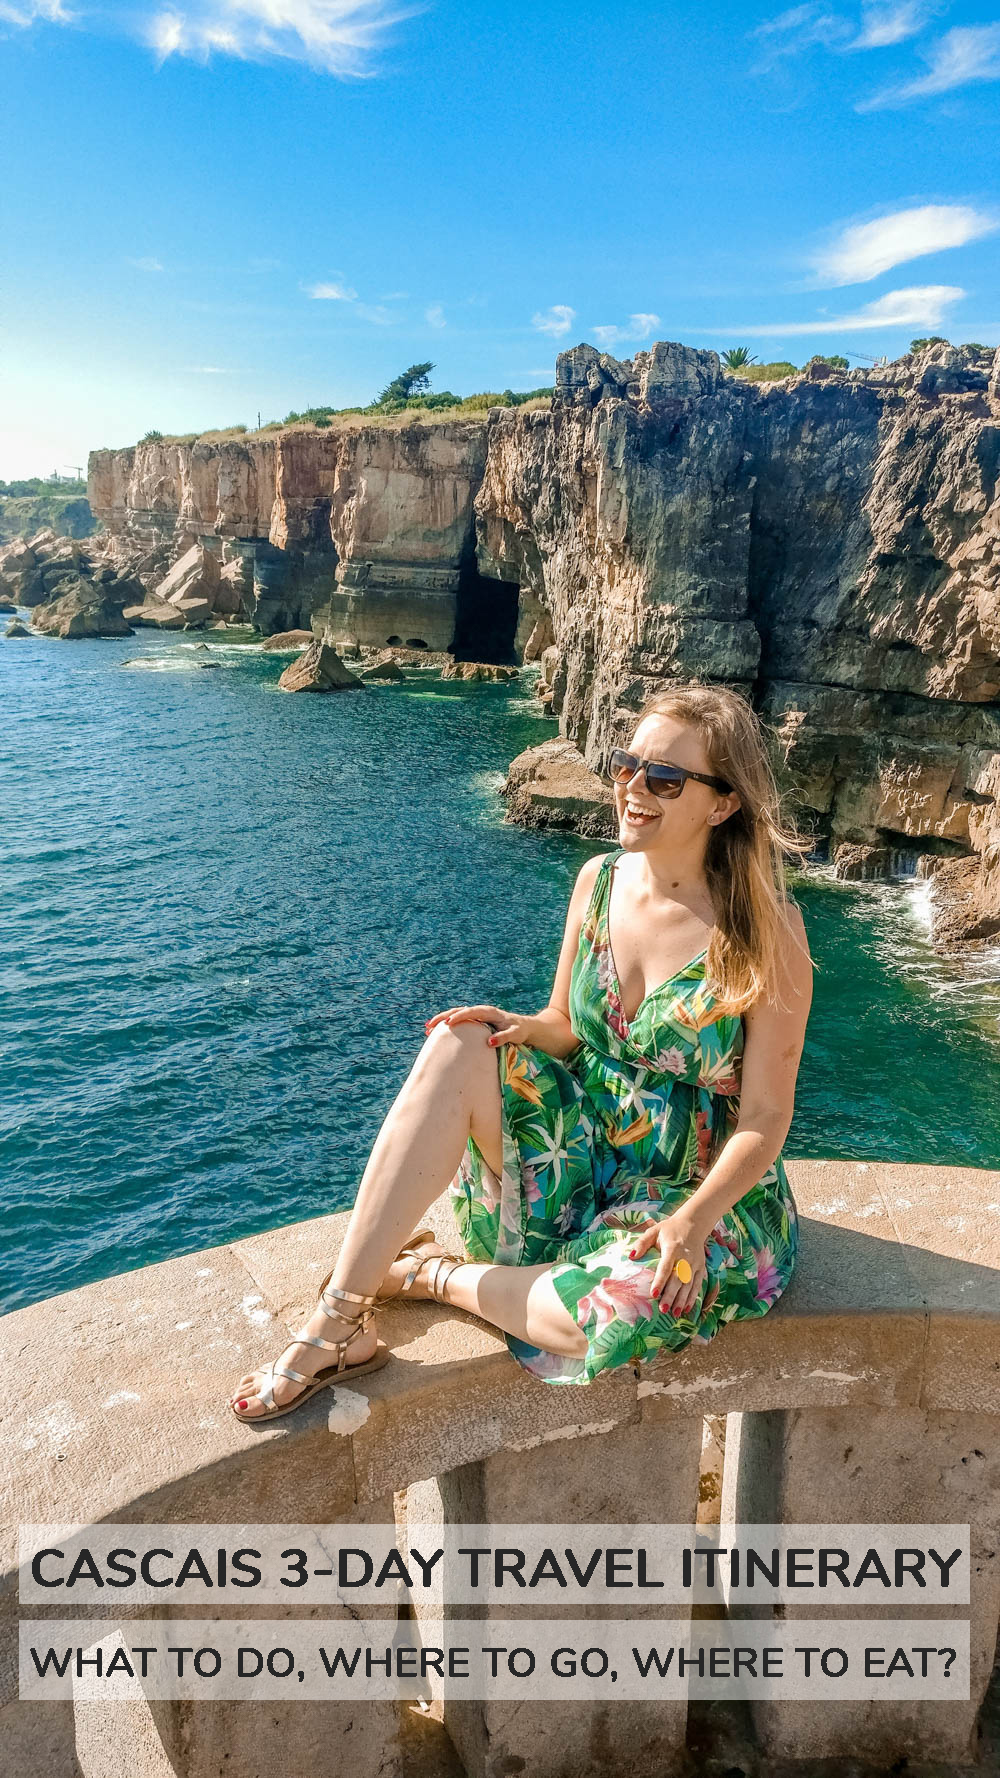 Cascais 3-day travel itinerary - what to do, where to go and where to eat? | Aliz's Wonderland